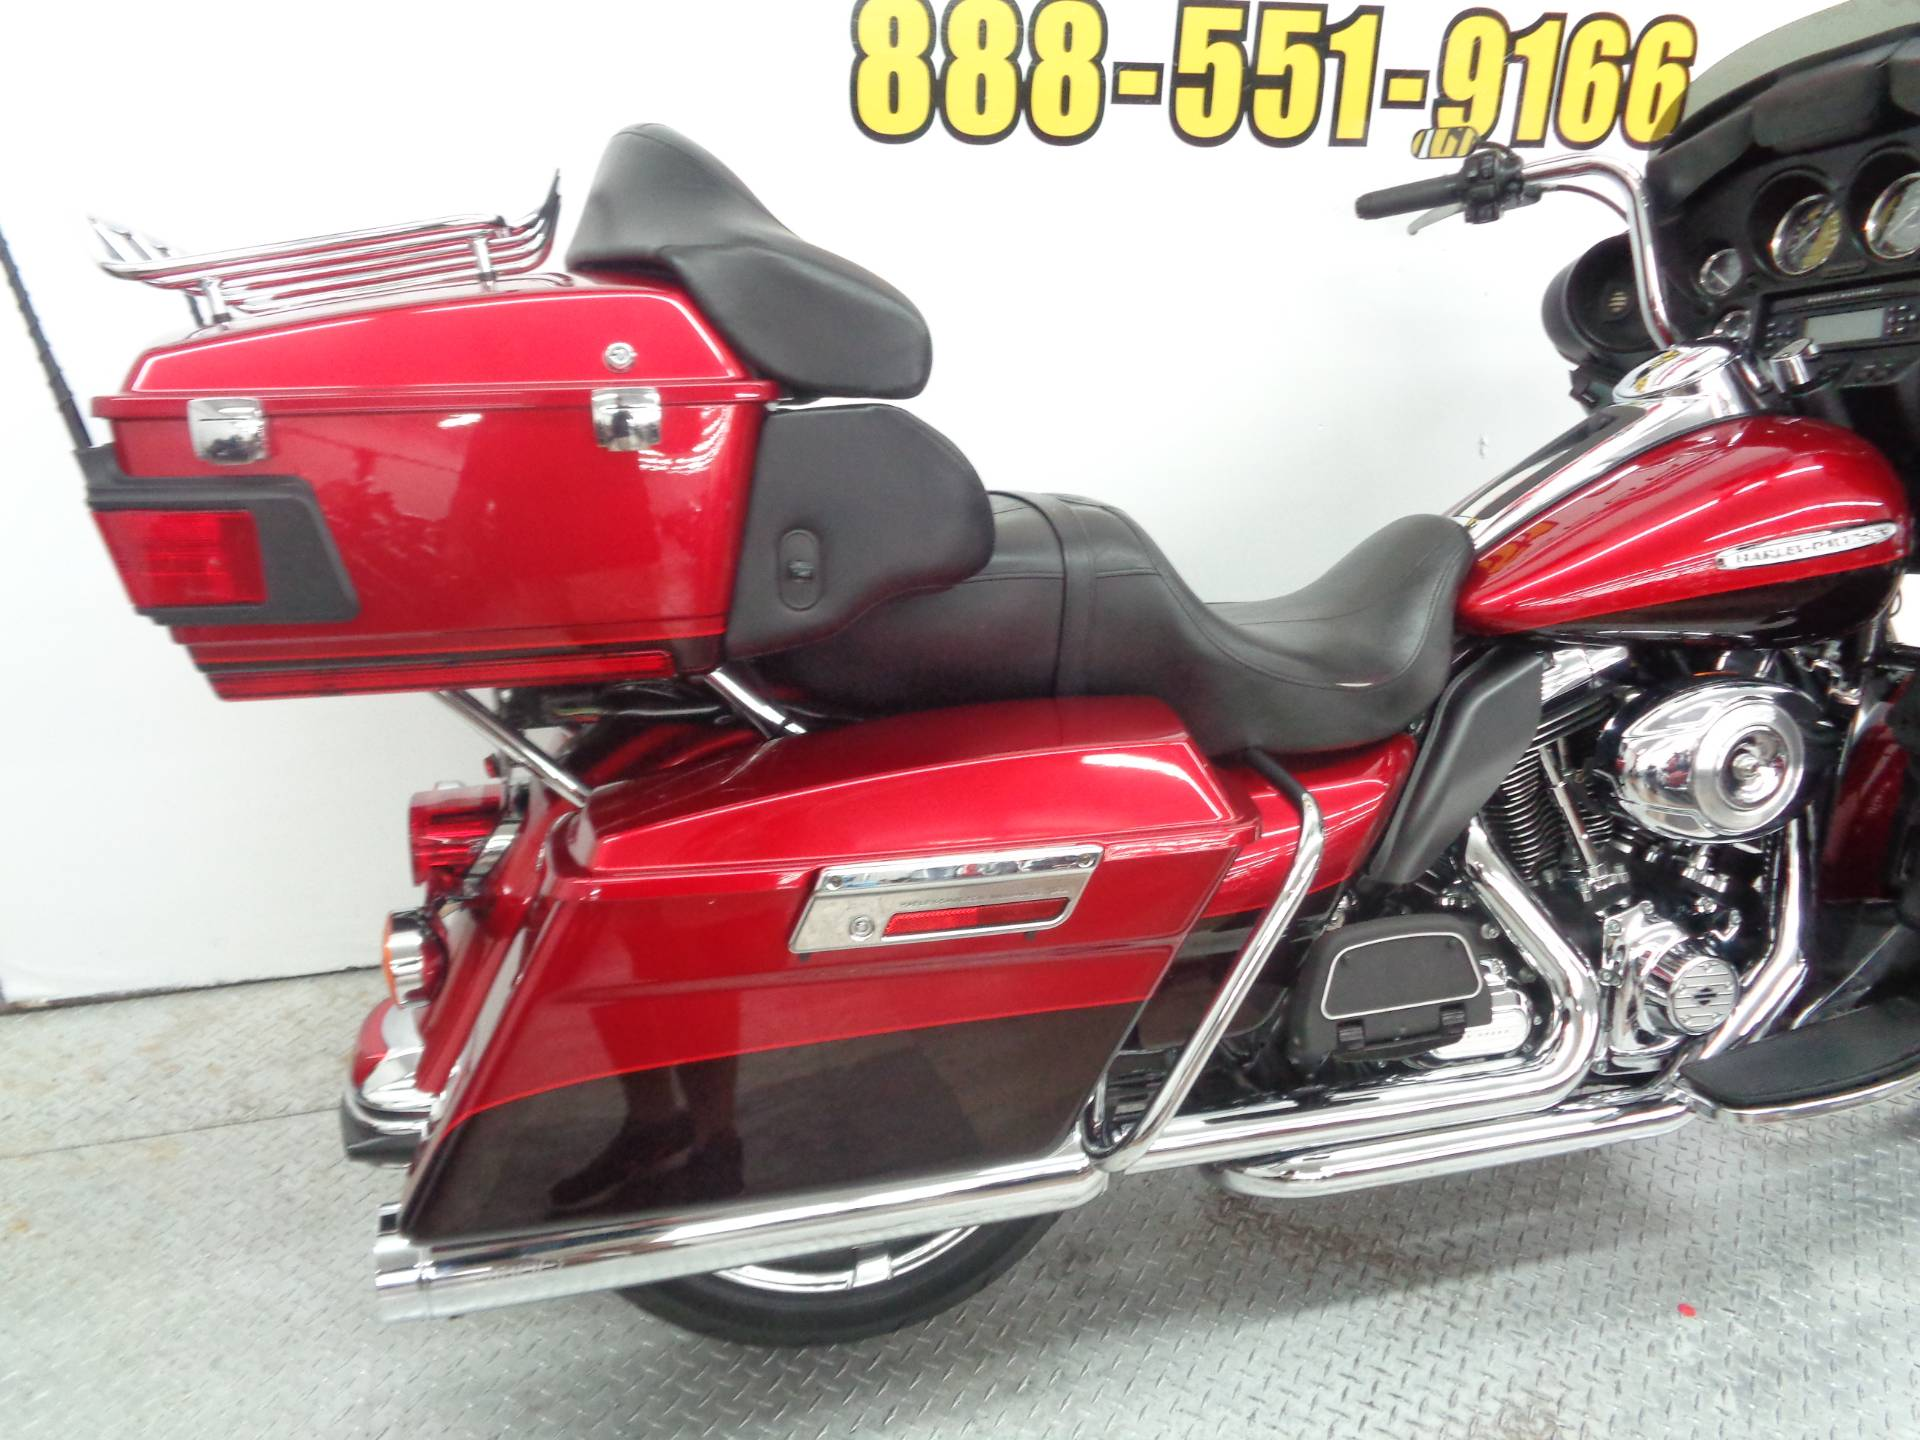 Used 2012 Harley Davidson Electra Glide Ultra Limited Motorcycles Red In Tulsa Oklahoma